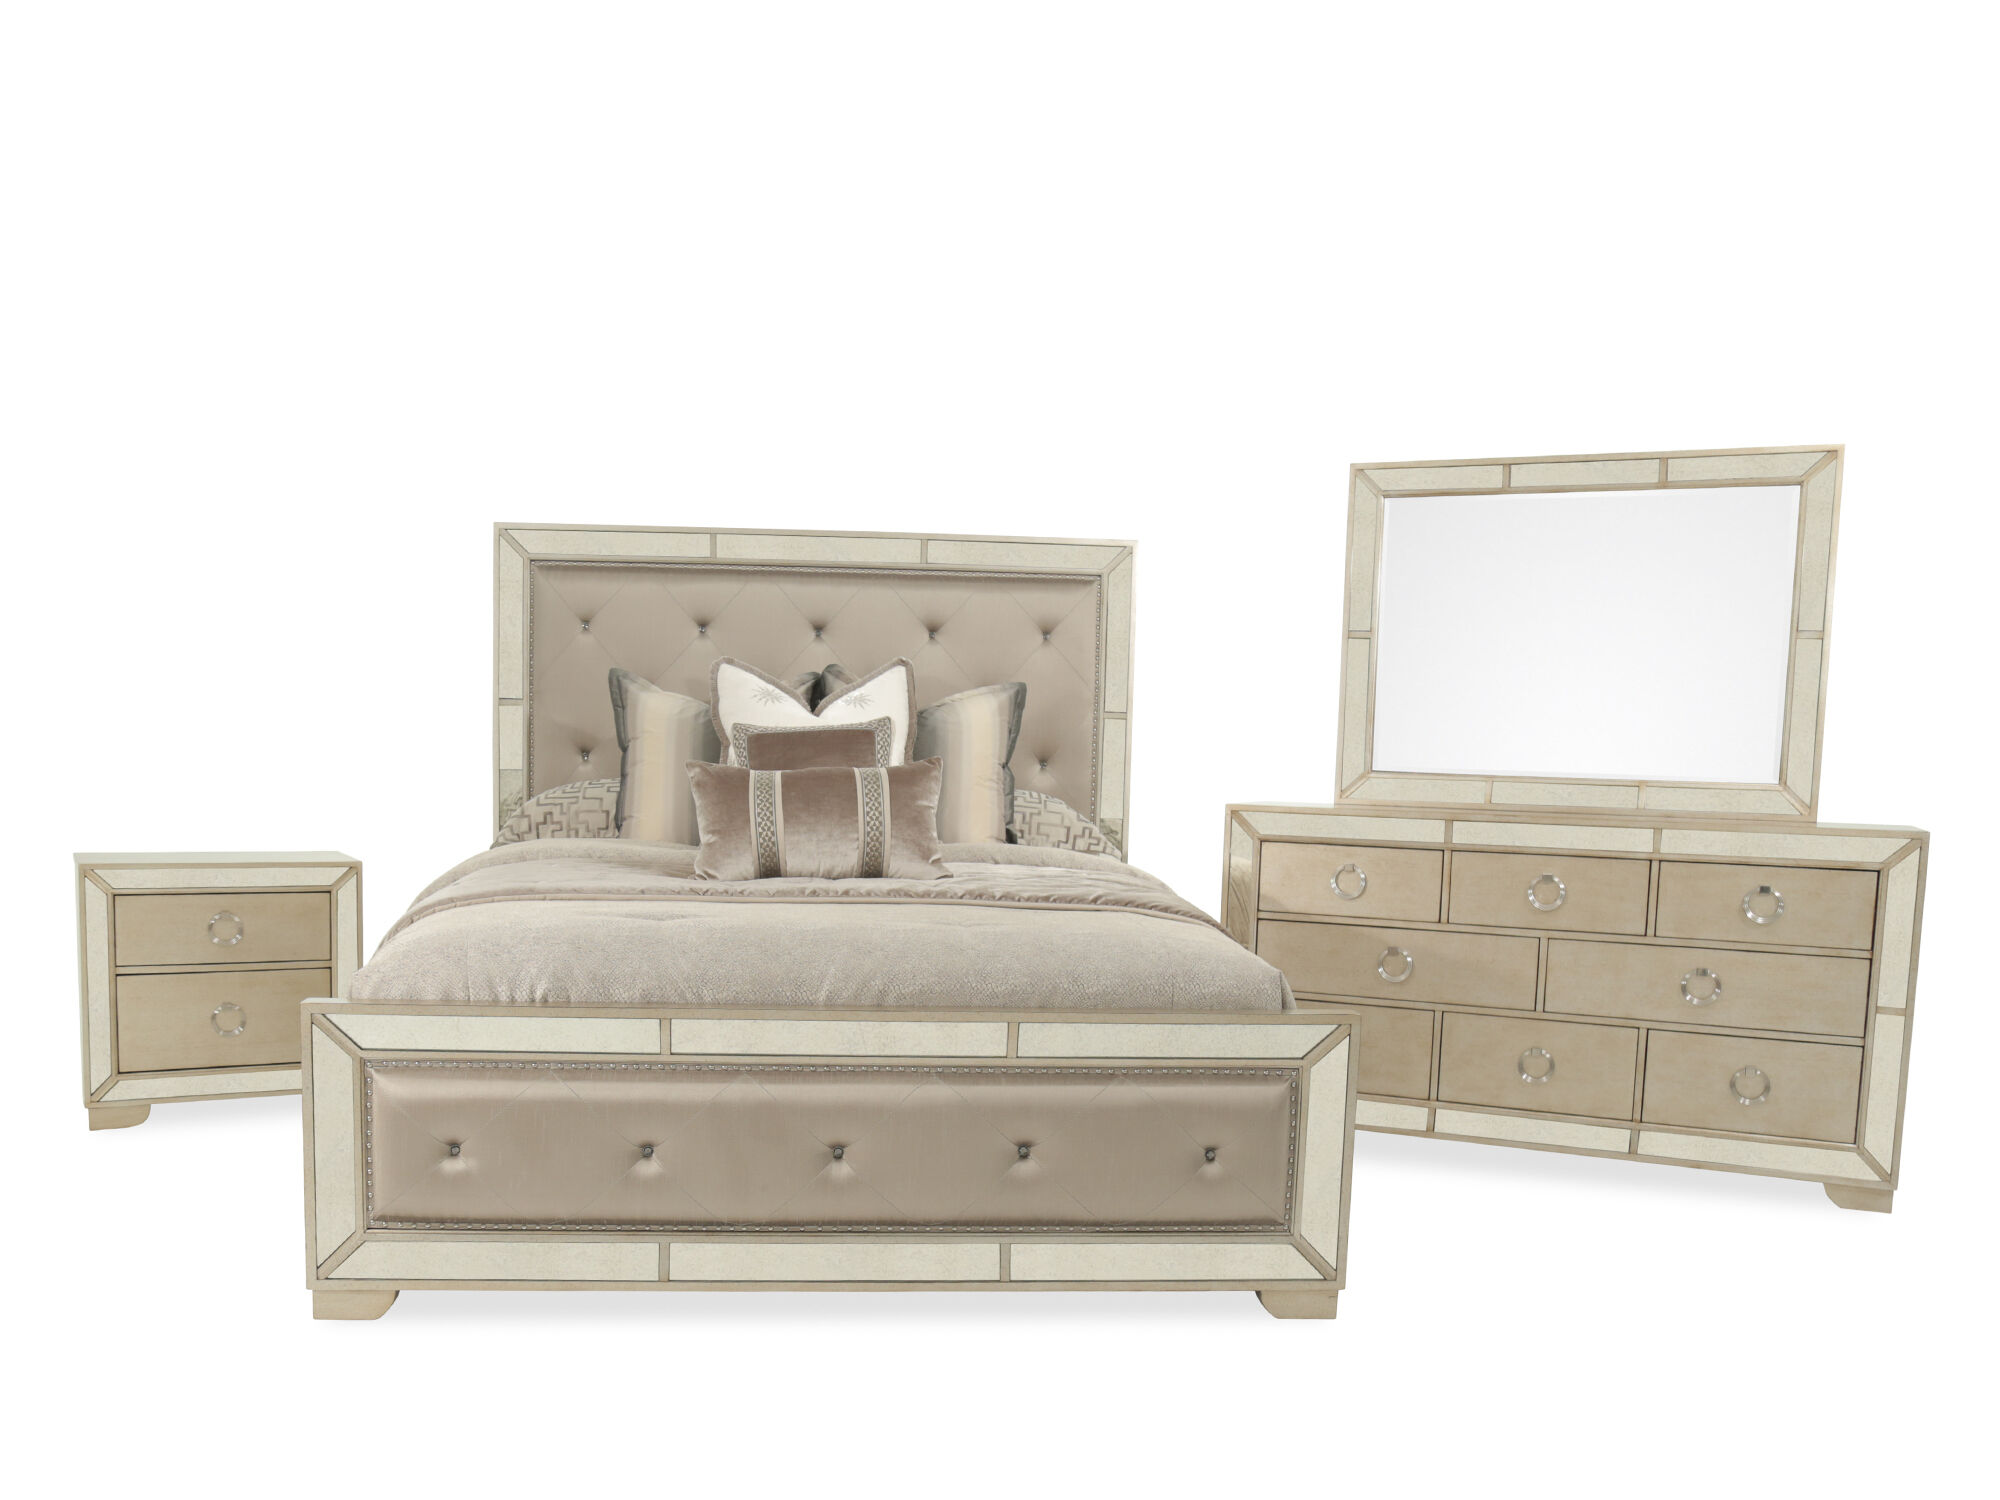 Pulaski Farrah Upholstered Queen Bedroom Suite ...